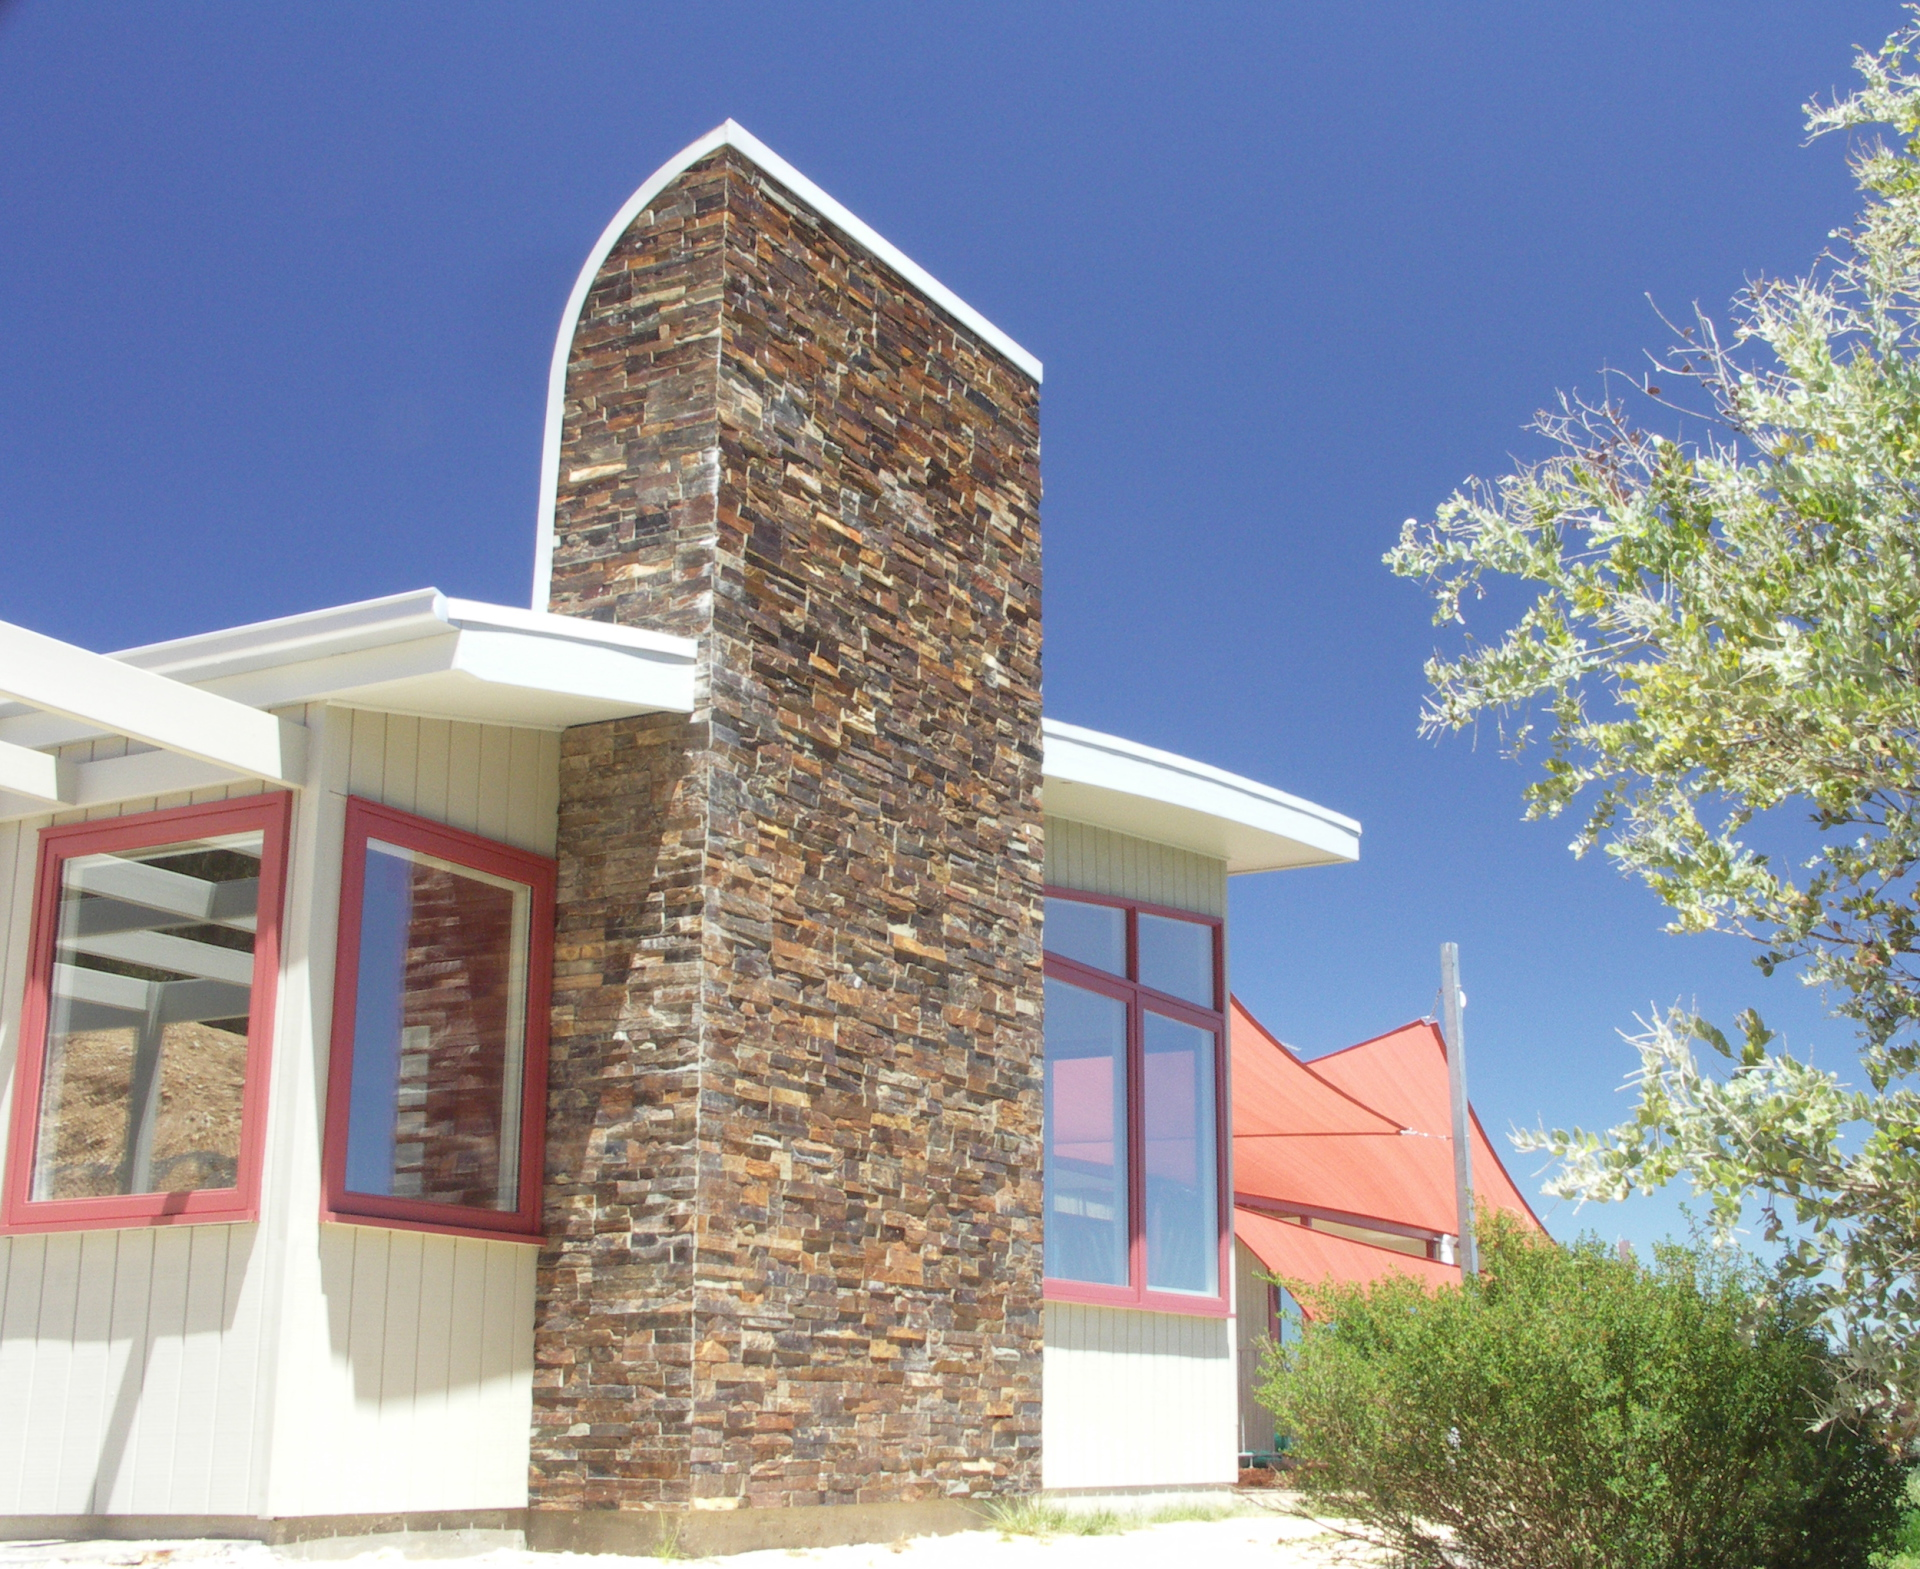 Hepburn House designed by sustainable architect Green Point Design. Stone-clad chimney feature.